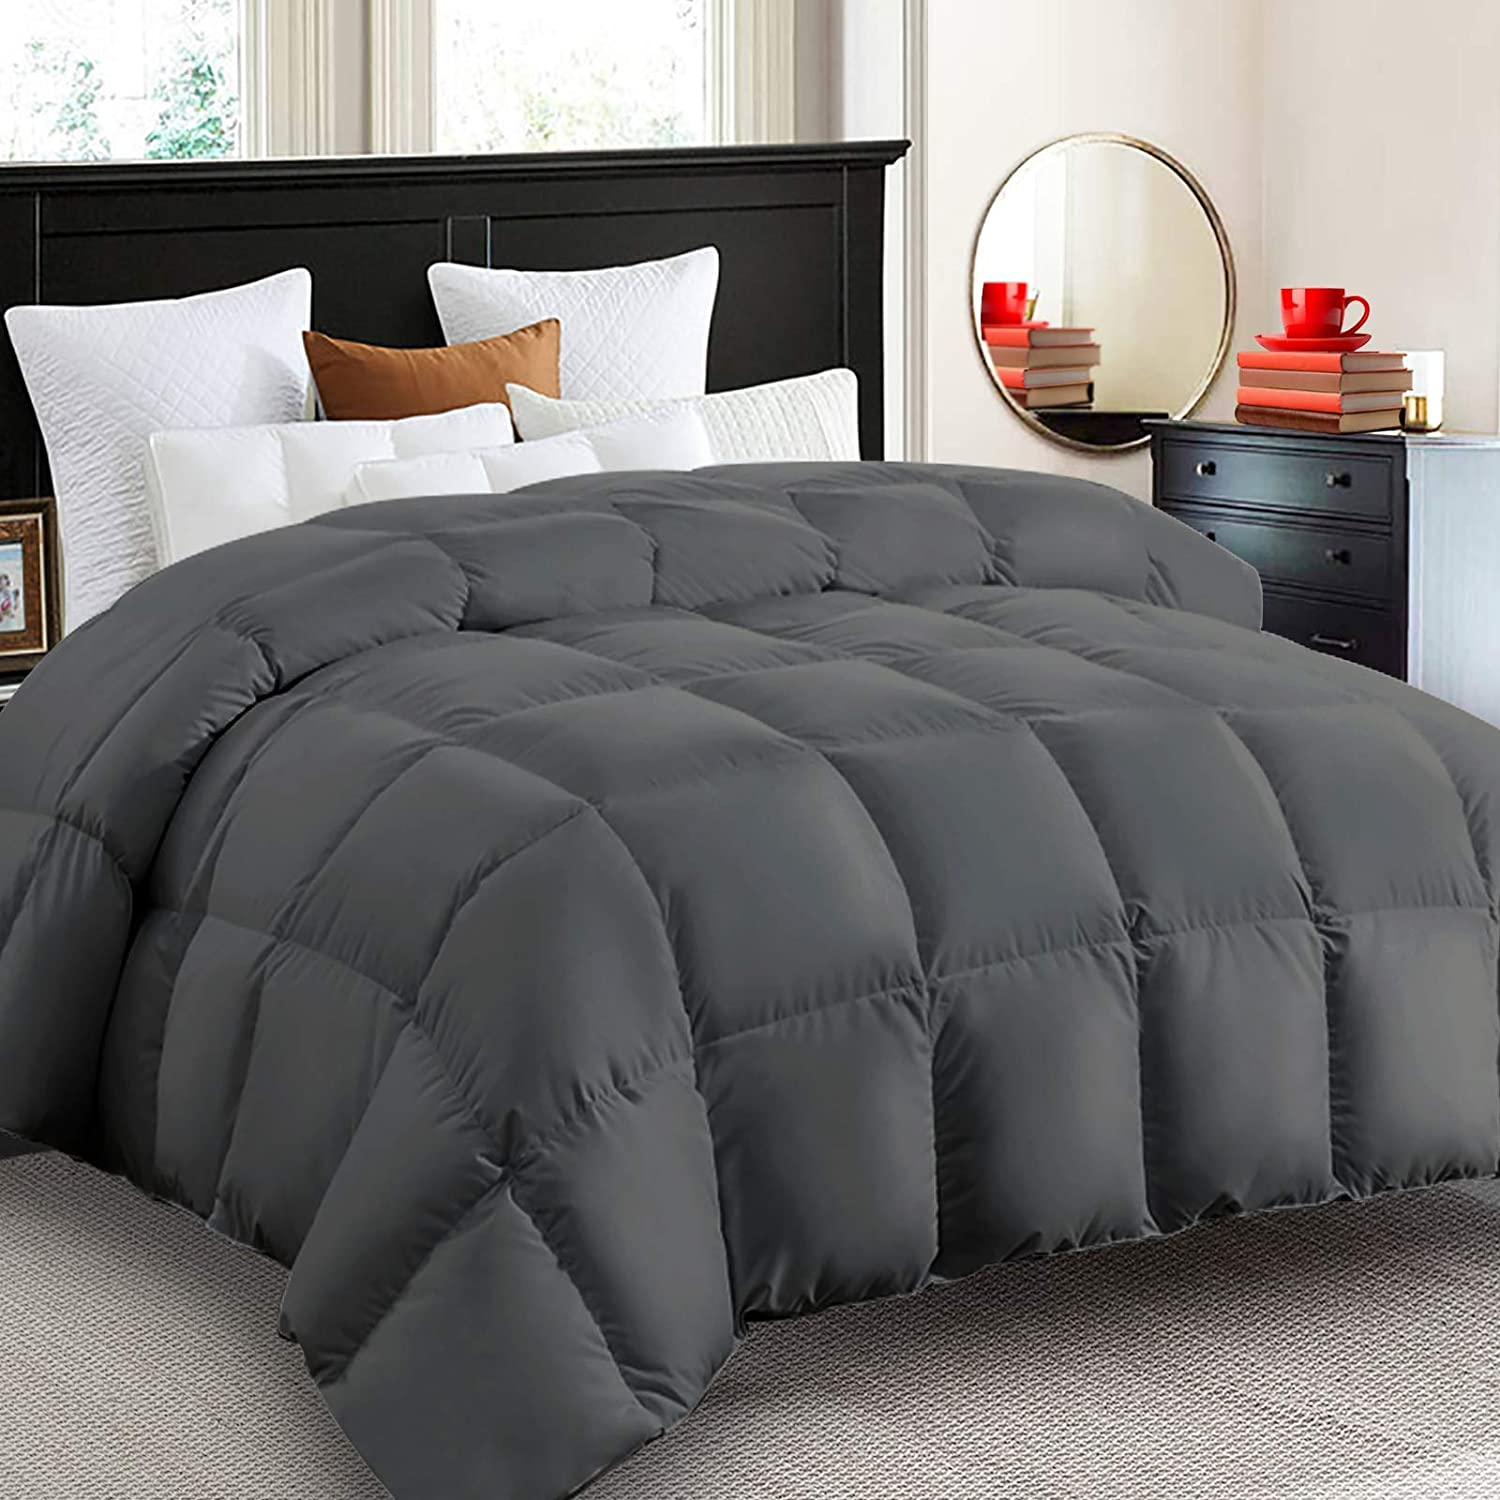 Beauty products King Mattress Manufacturer direct delivery padKing Comforter